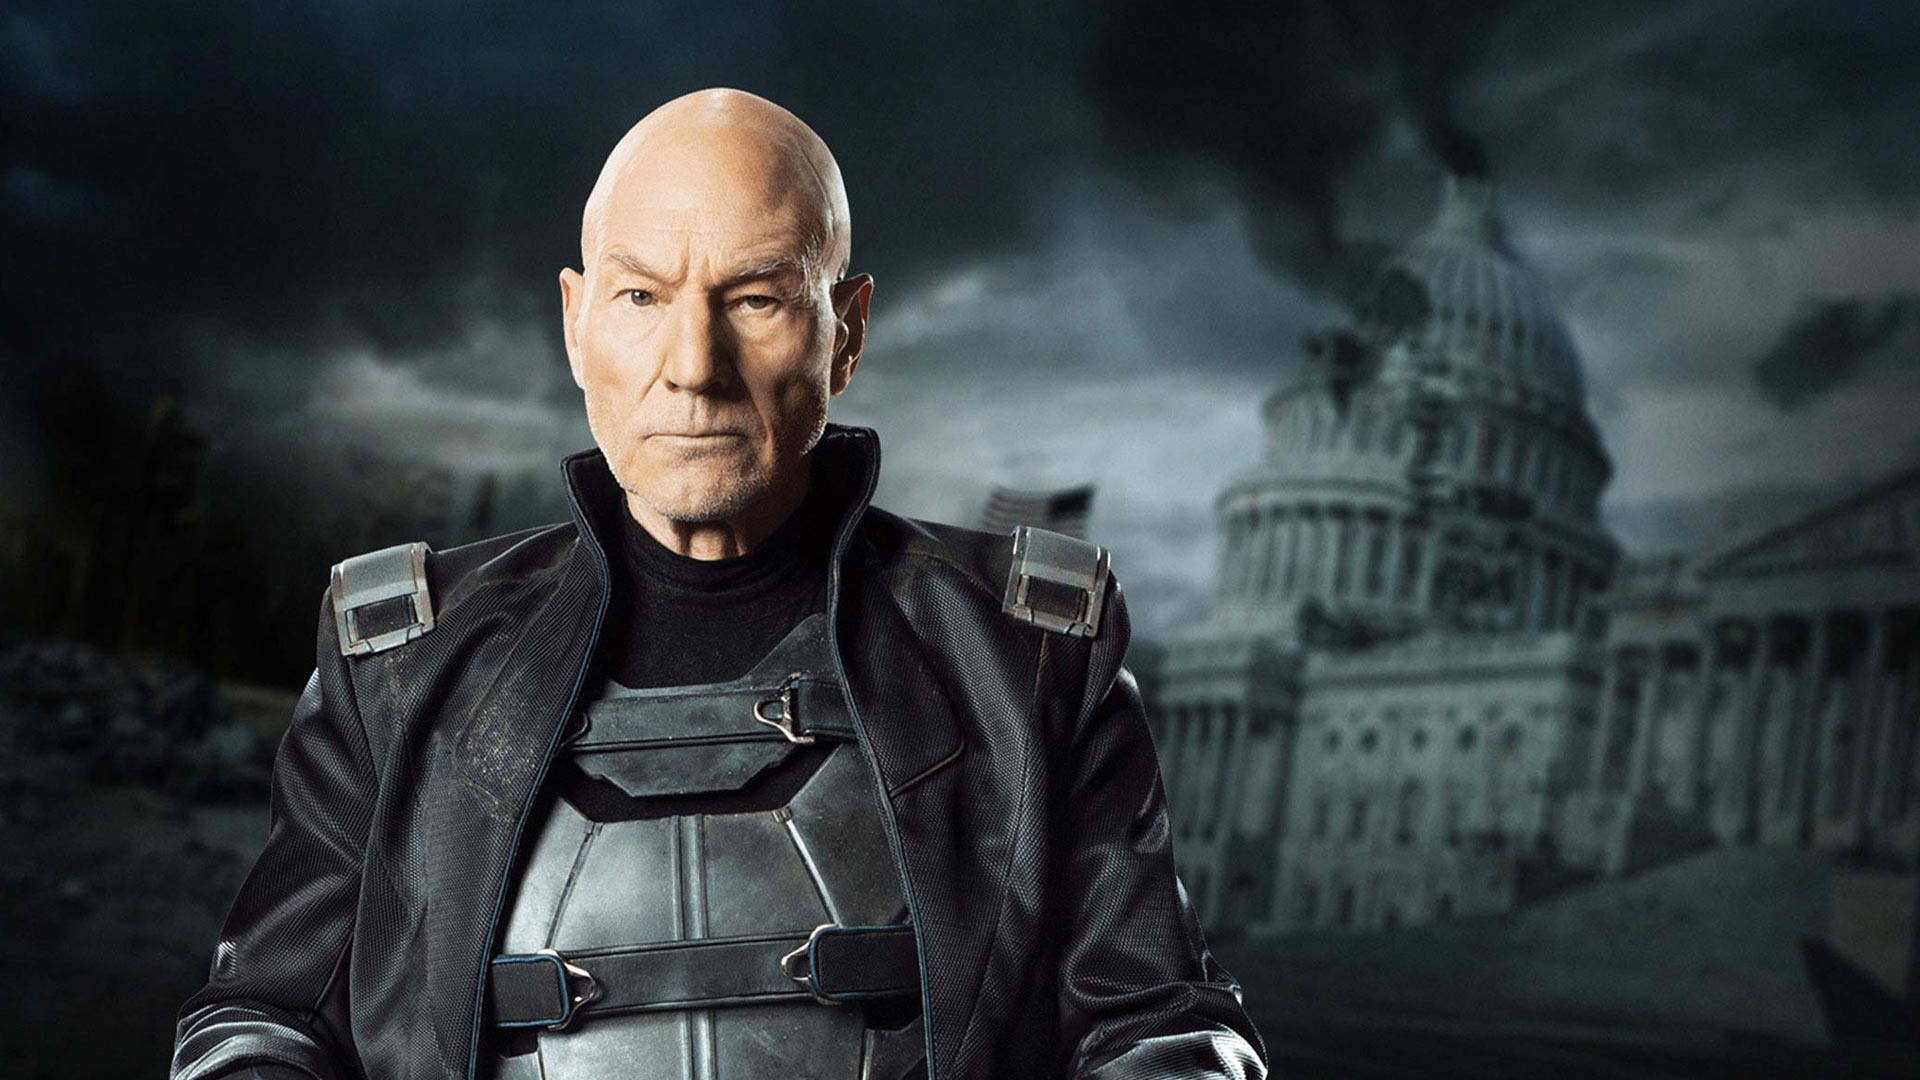 X Men Days Of Future Past Movie Professor Wallpaper1